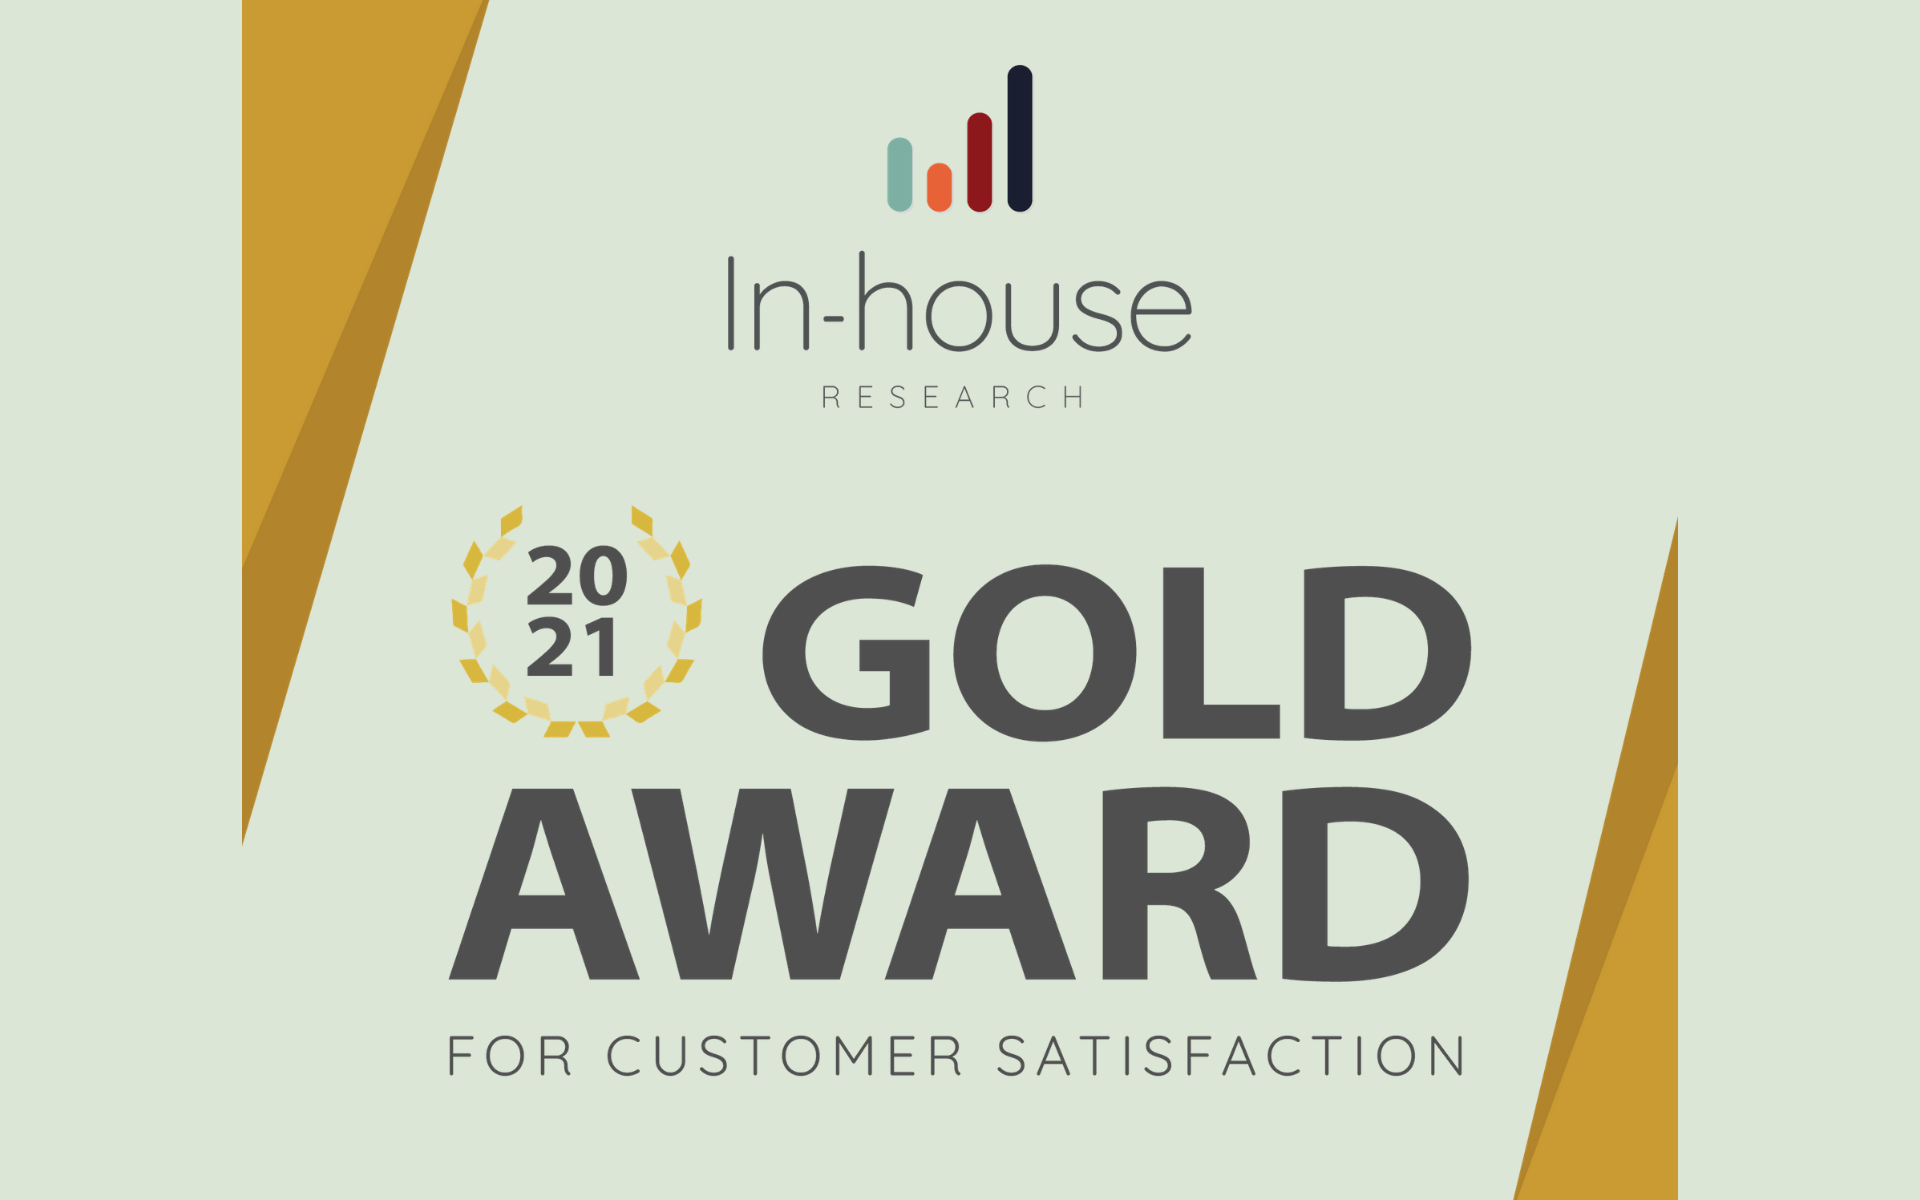 Orbit Homes achieves double gold award for customer satisfaction